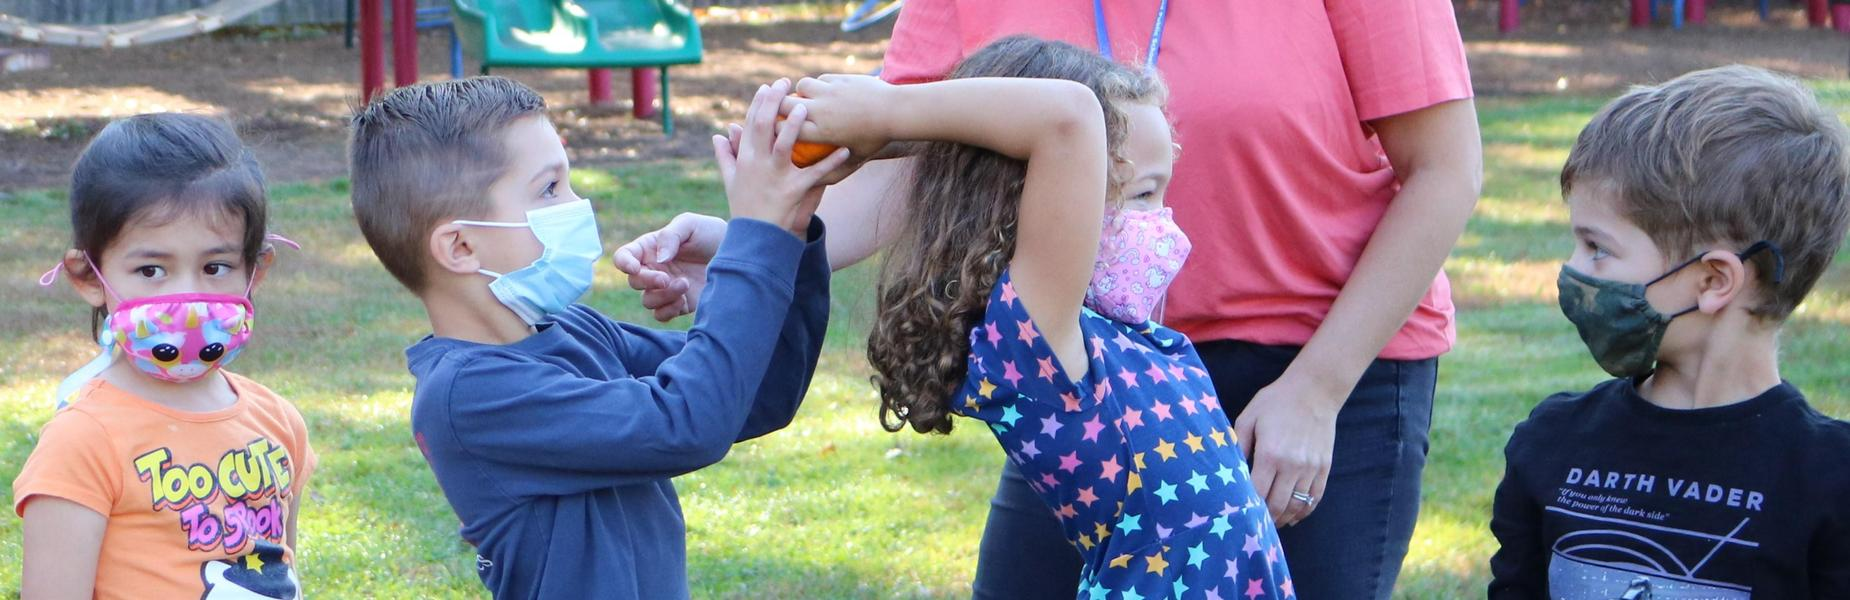 Photo of kindergartners passing small pumpkin as part of a game during annual Pumpkin Patch festivities